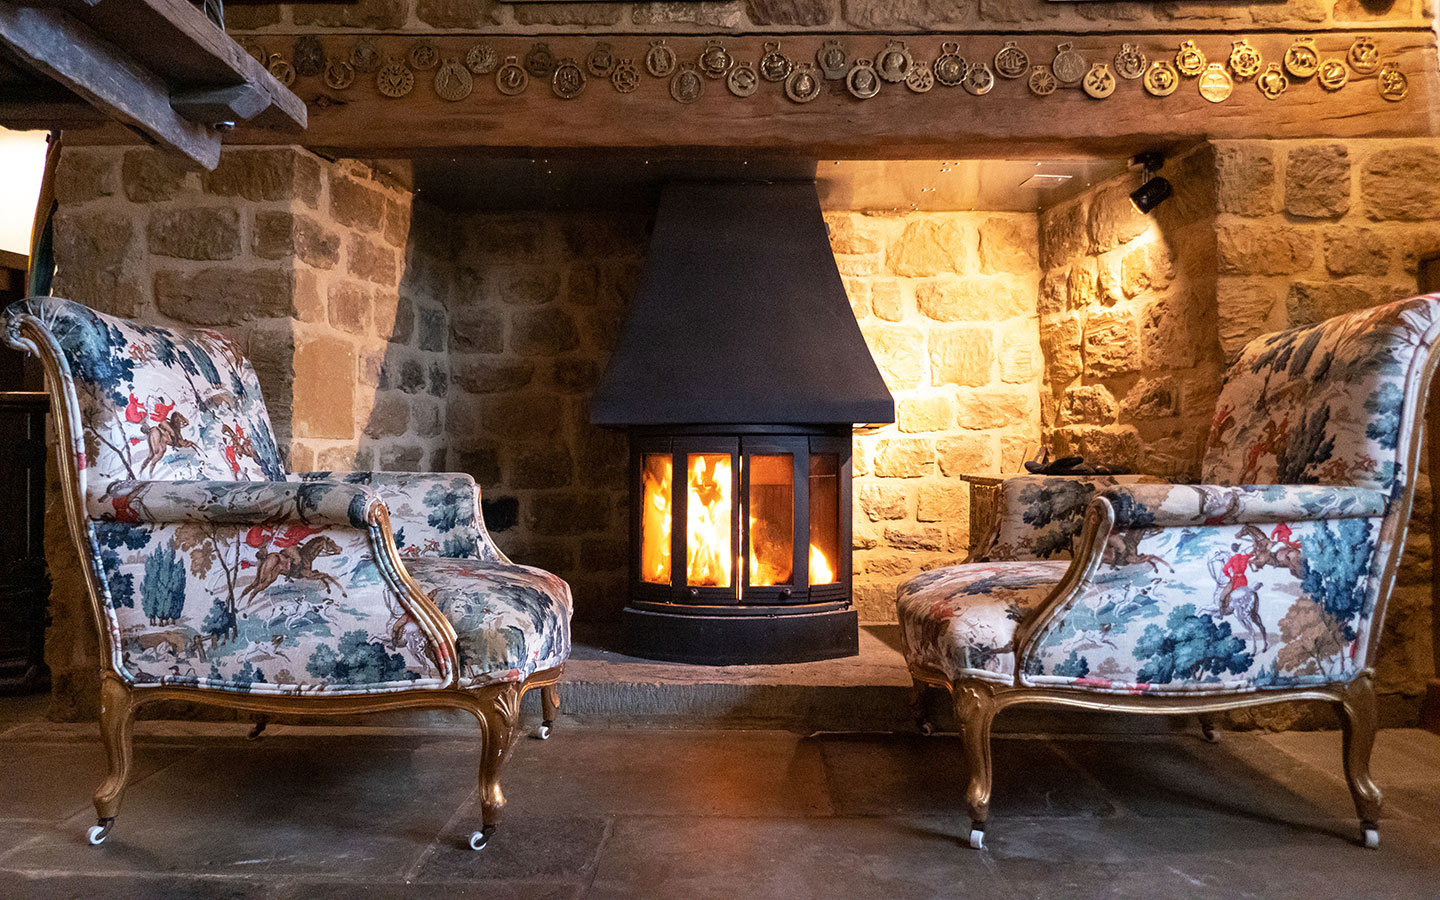 Cosying up by the fire in a Cotswold country pub in autumn